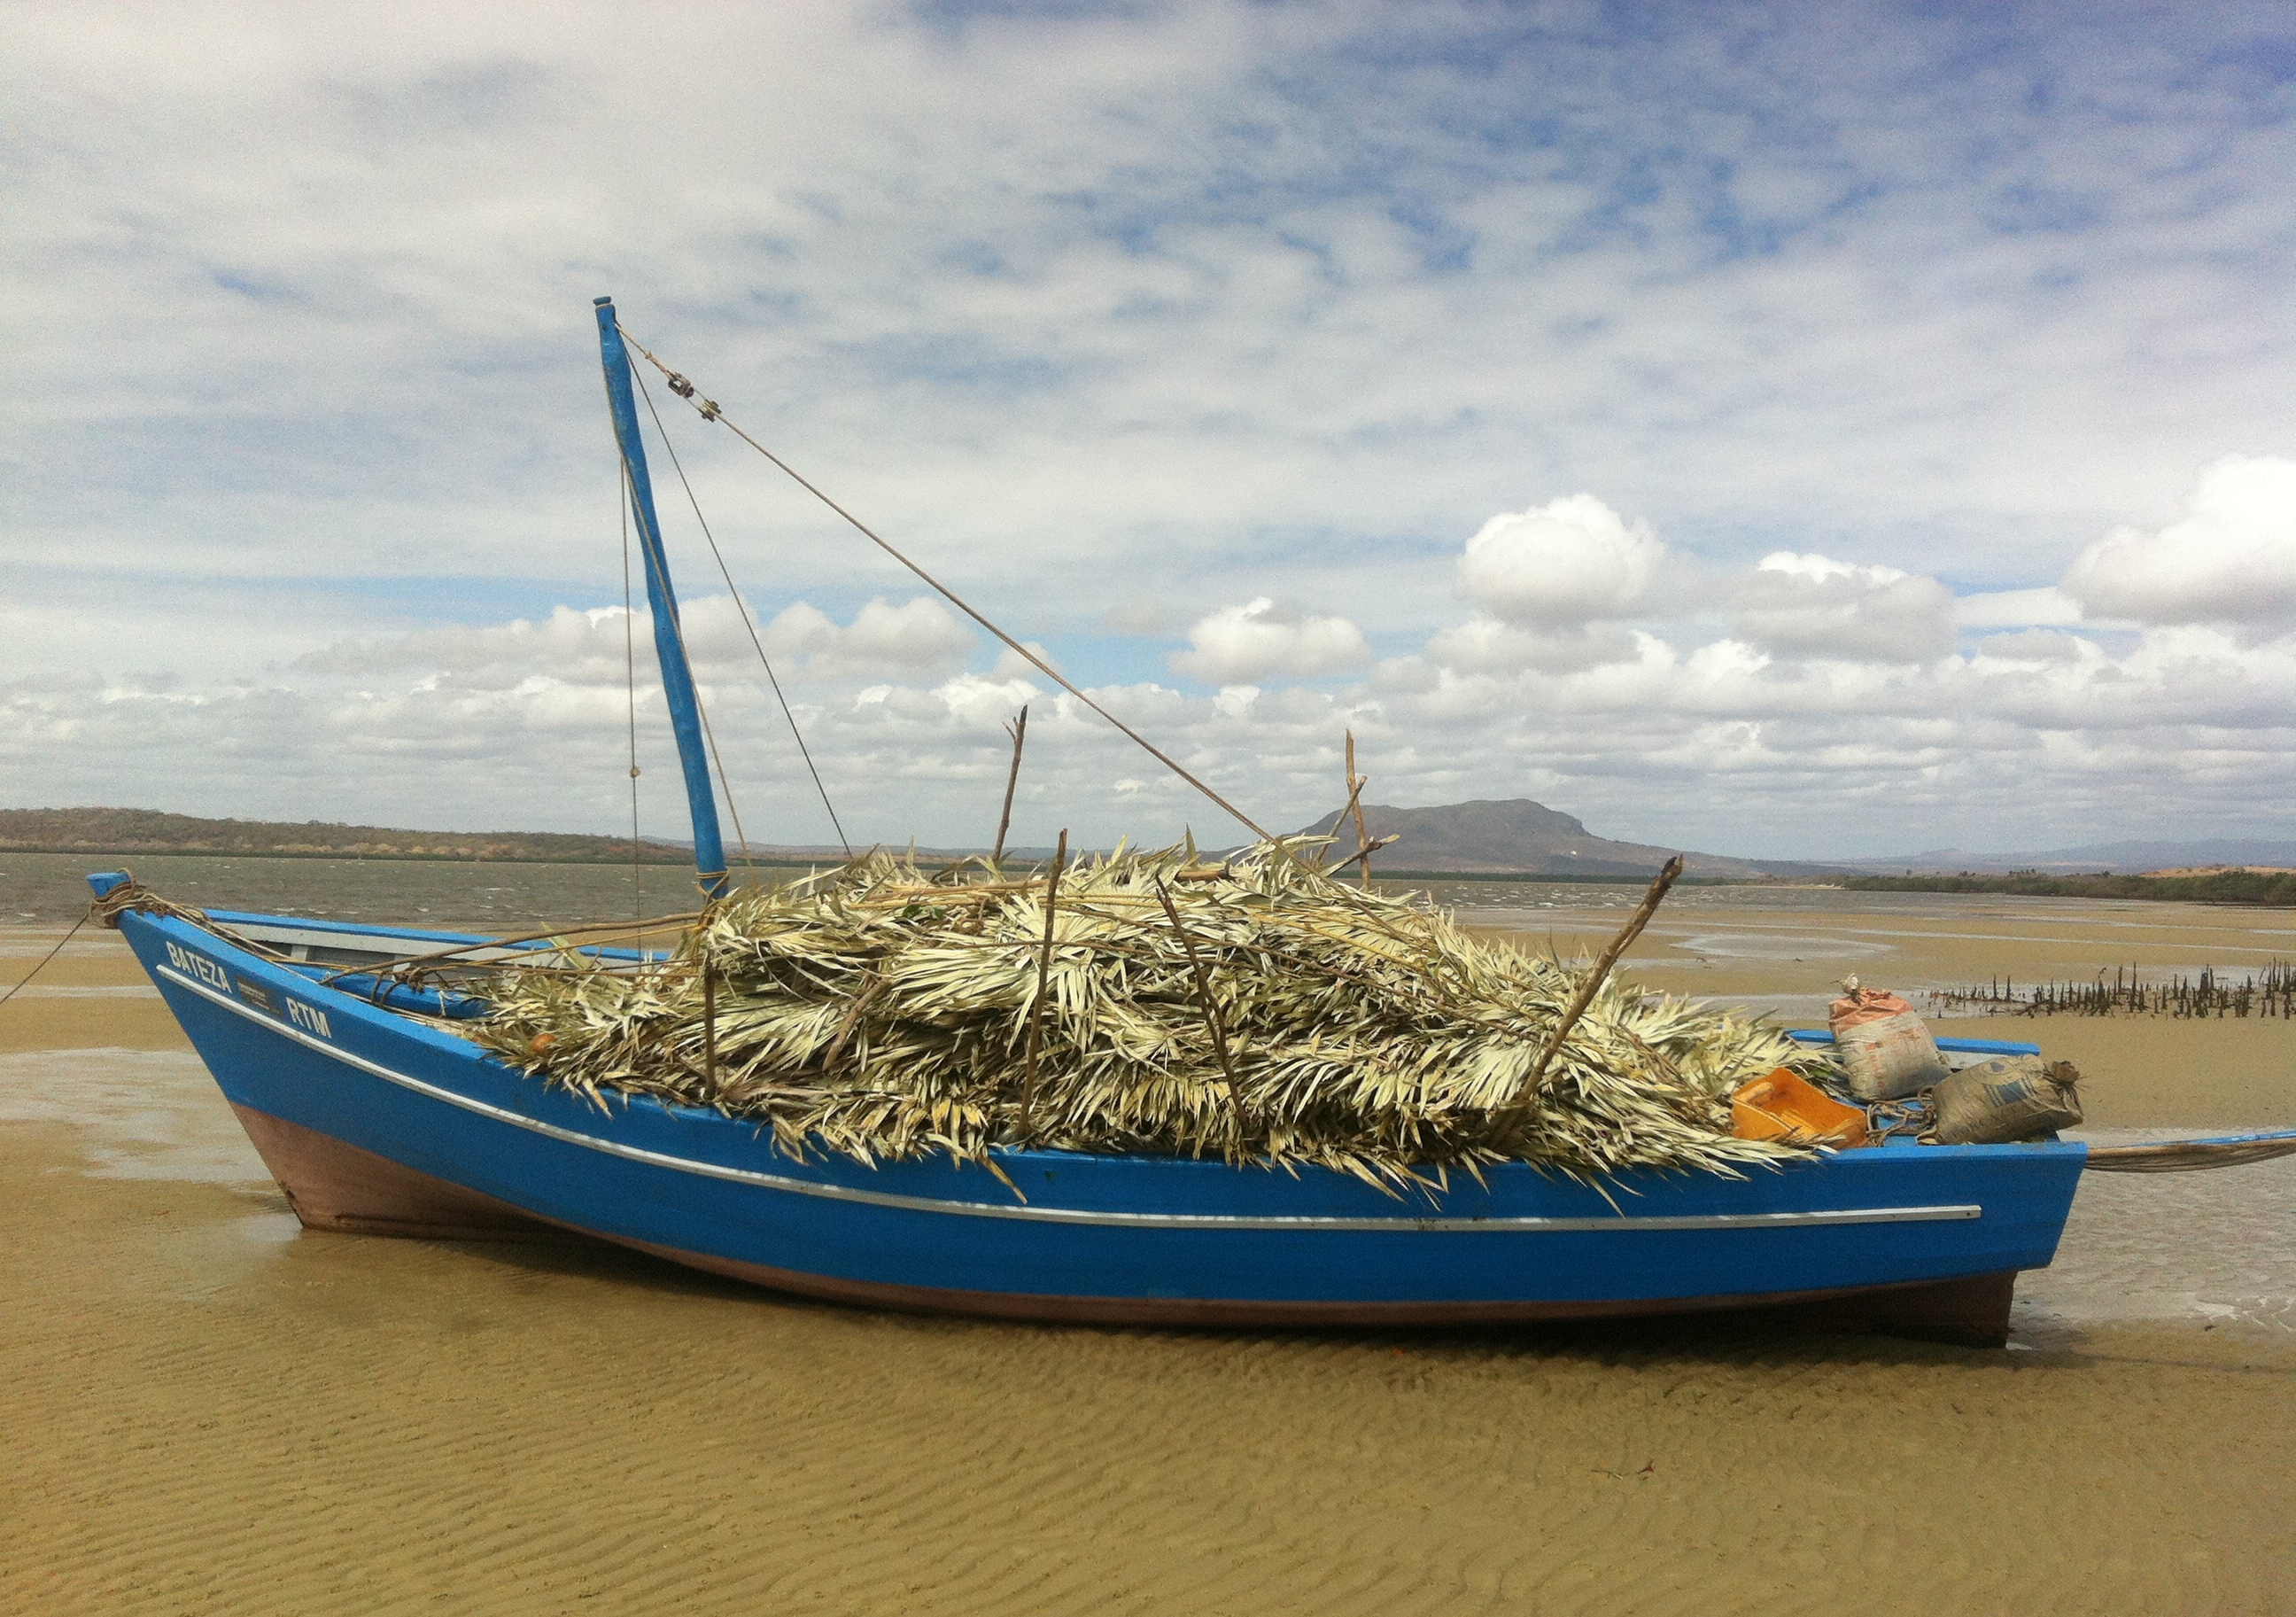 A boat in shallow water in Northern Madagascar